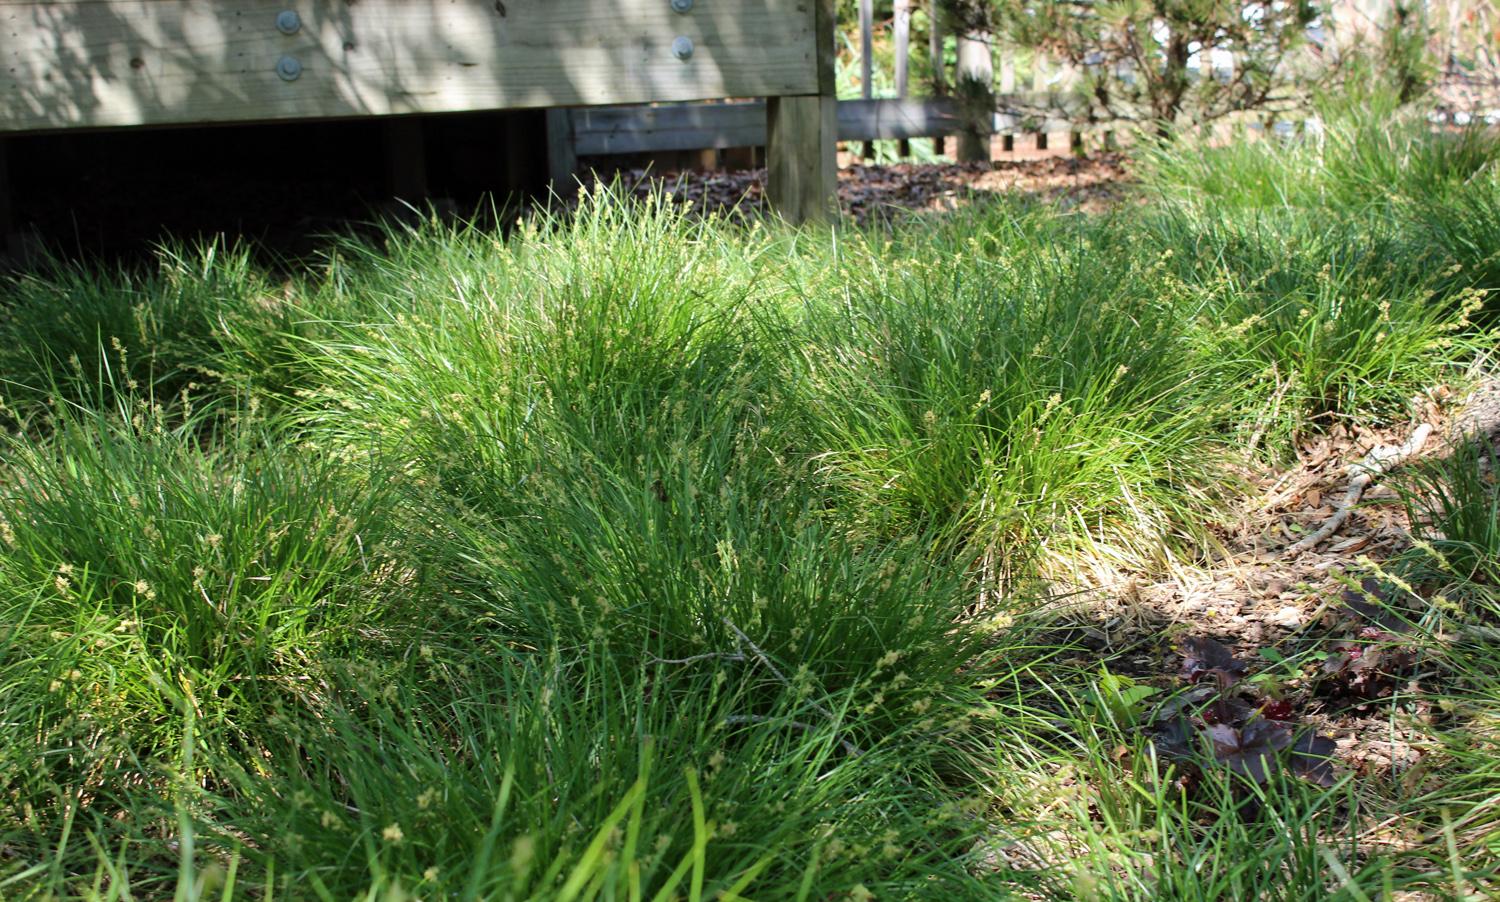 By early April, Carex divulsa is lush and green with emerging inflorescences.